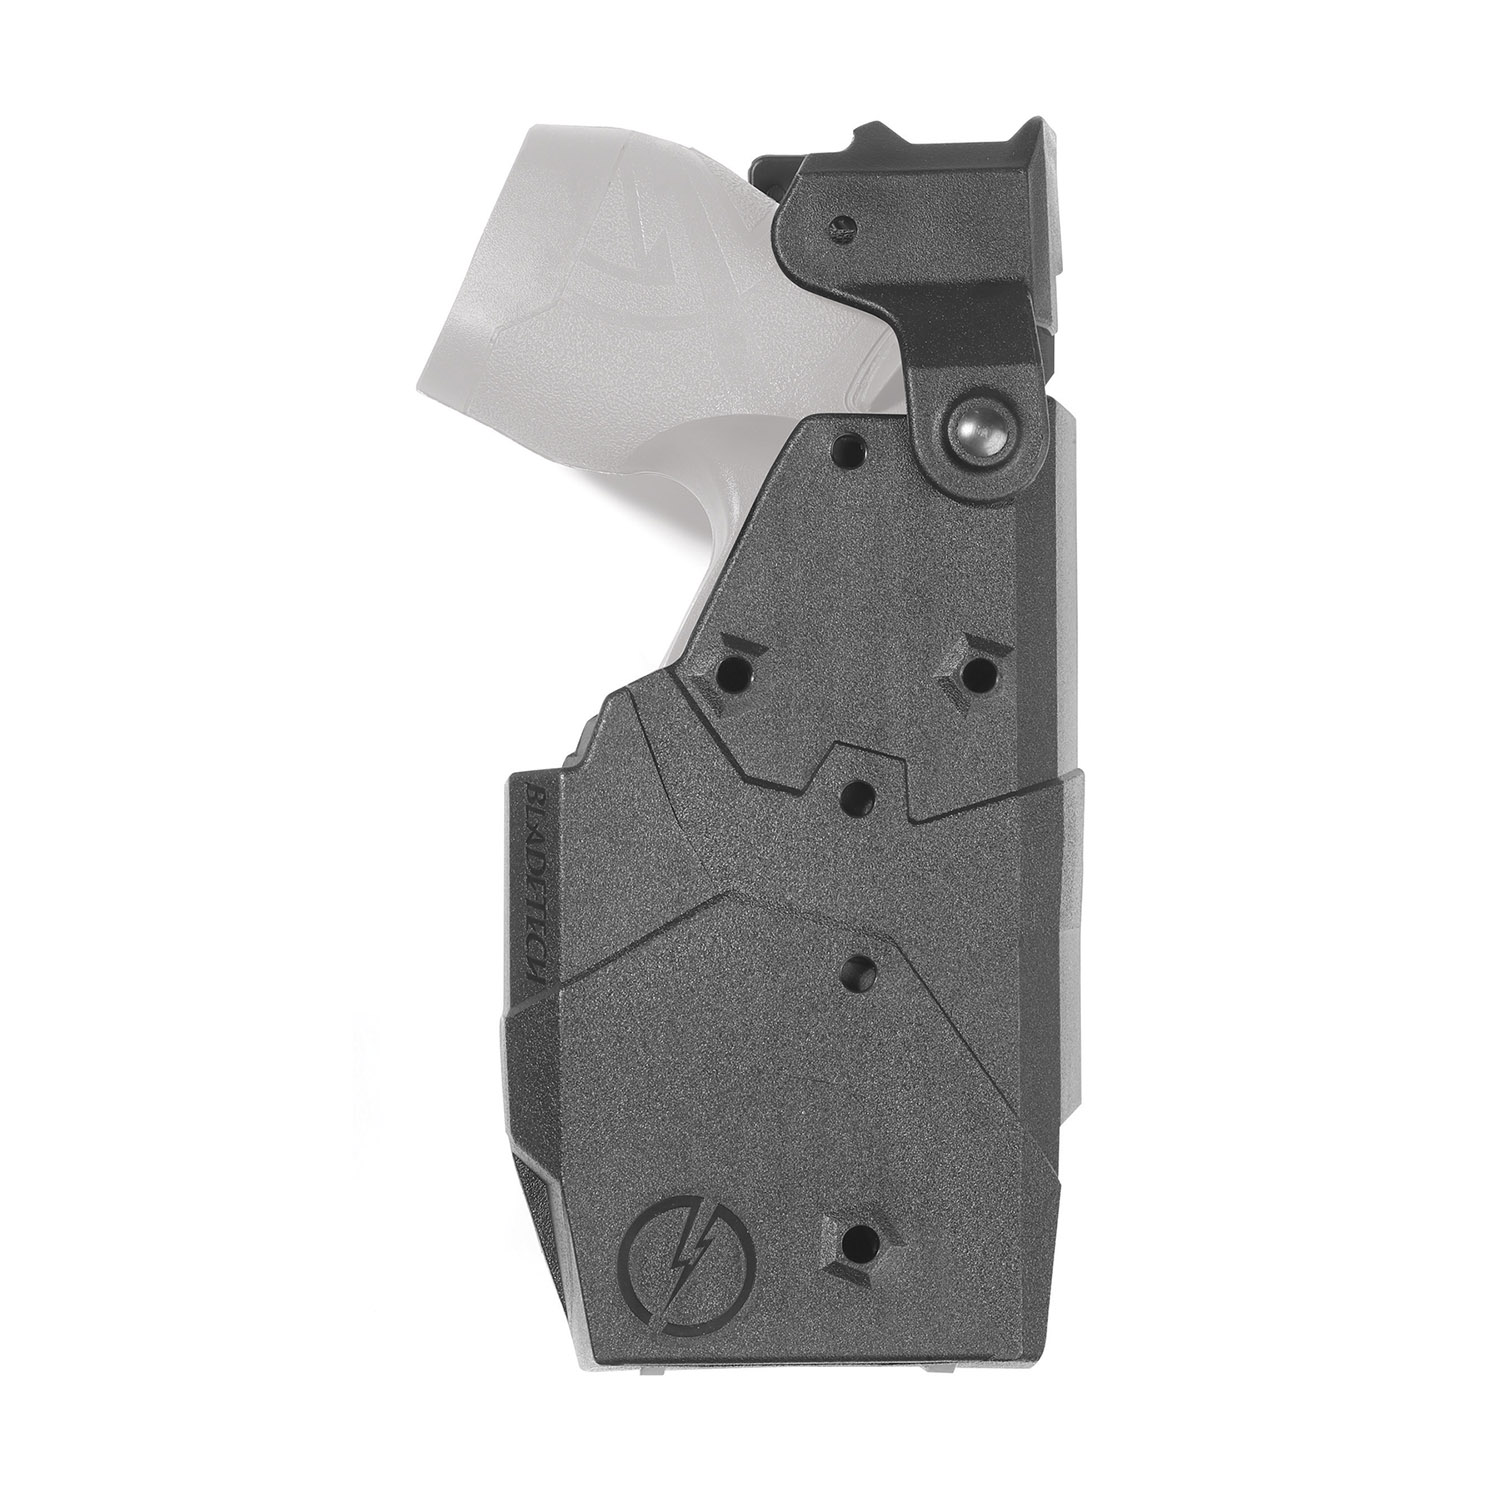 Blade-tech Taser X2 Holster with Tek Lok Attachment